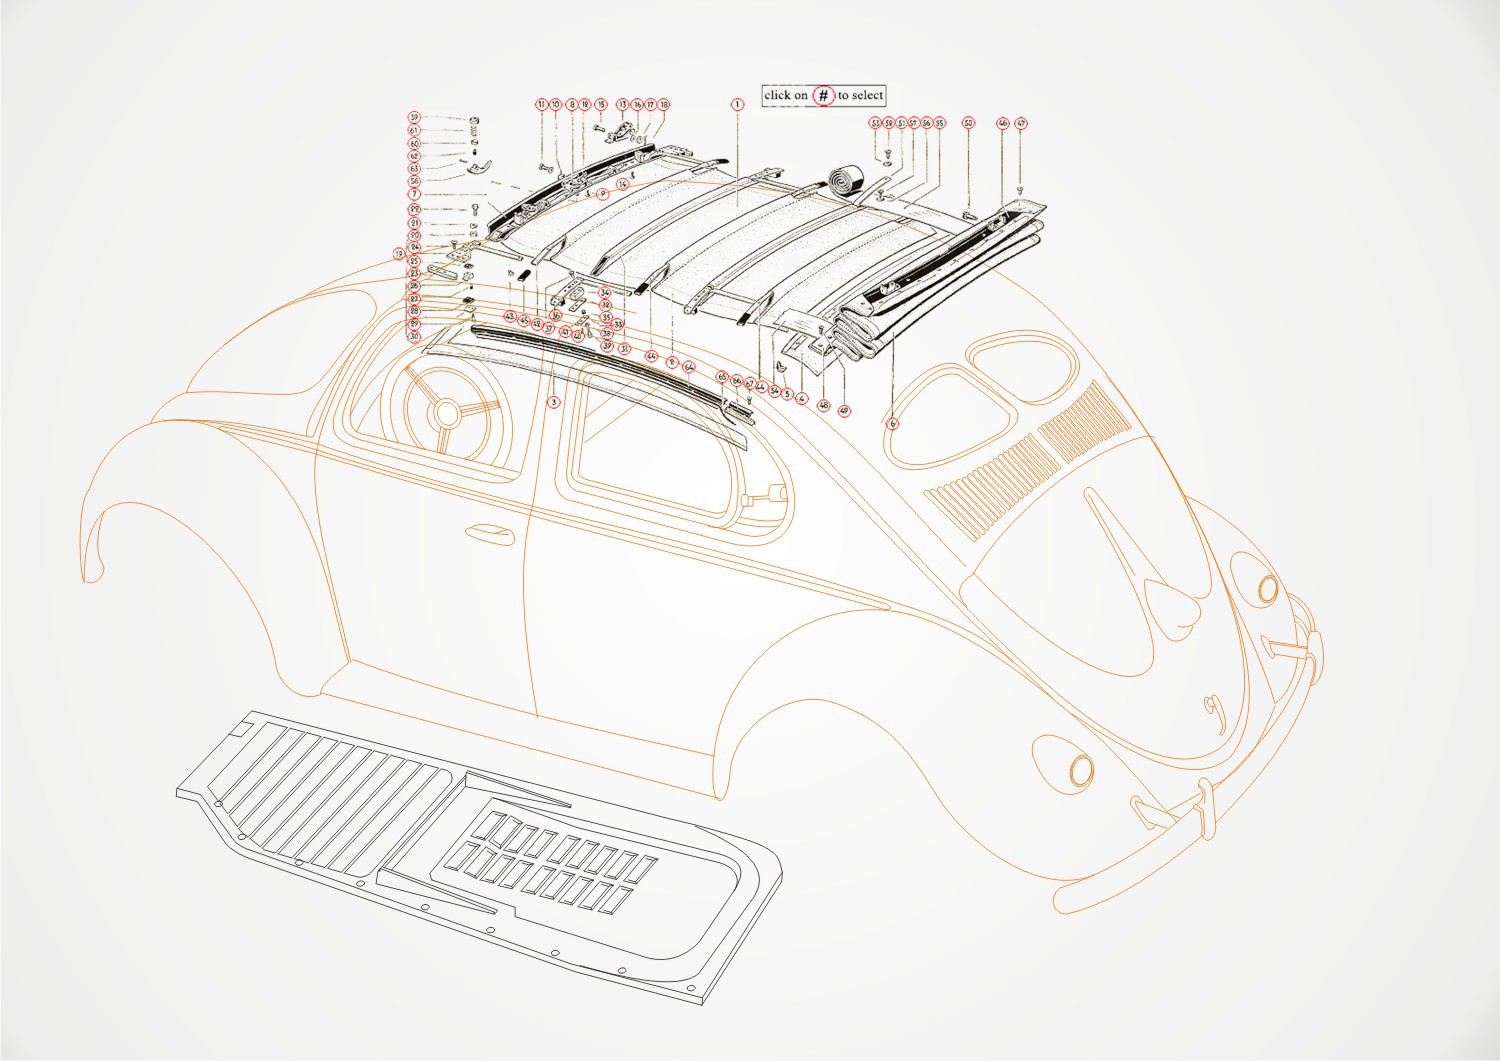 Create line drawings of various VW bug, bus, and truck.